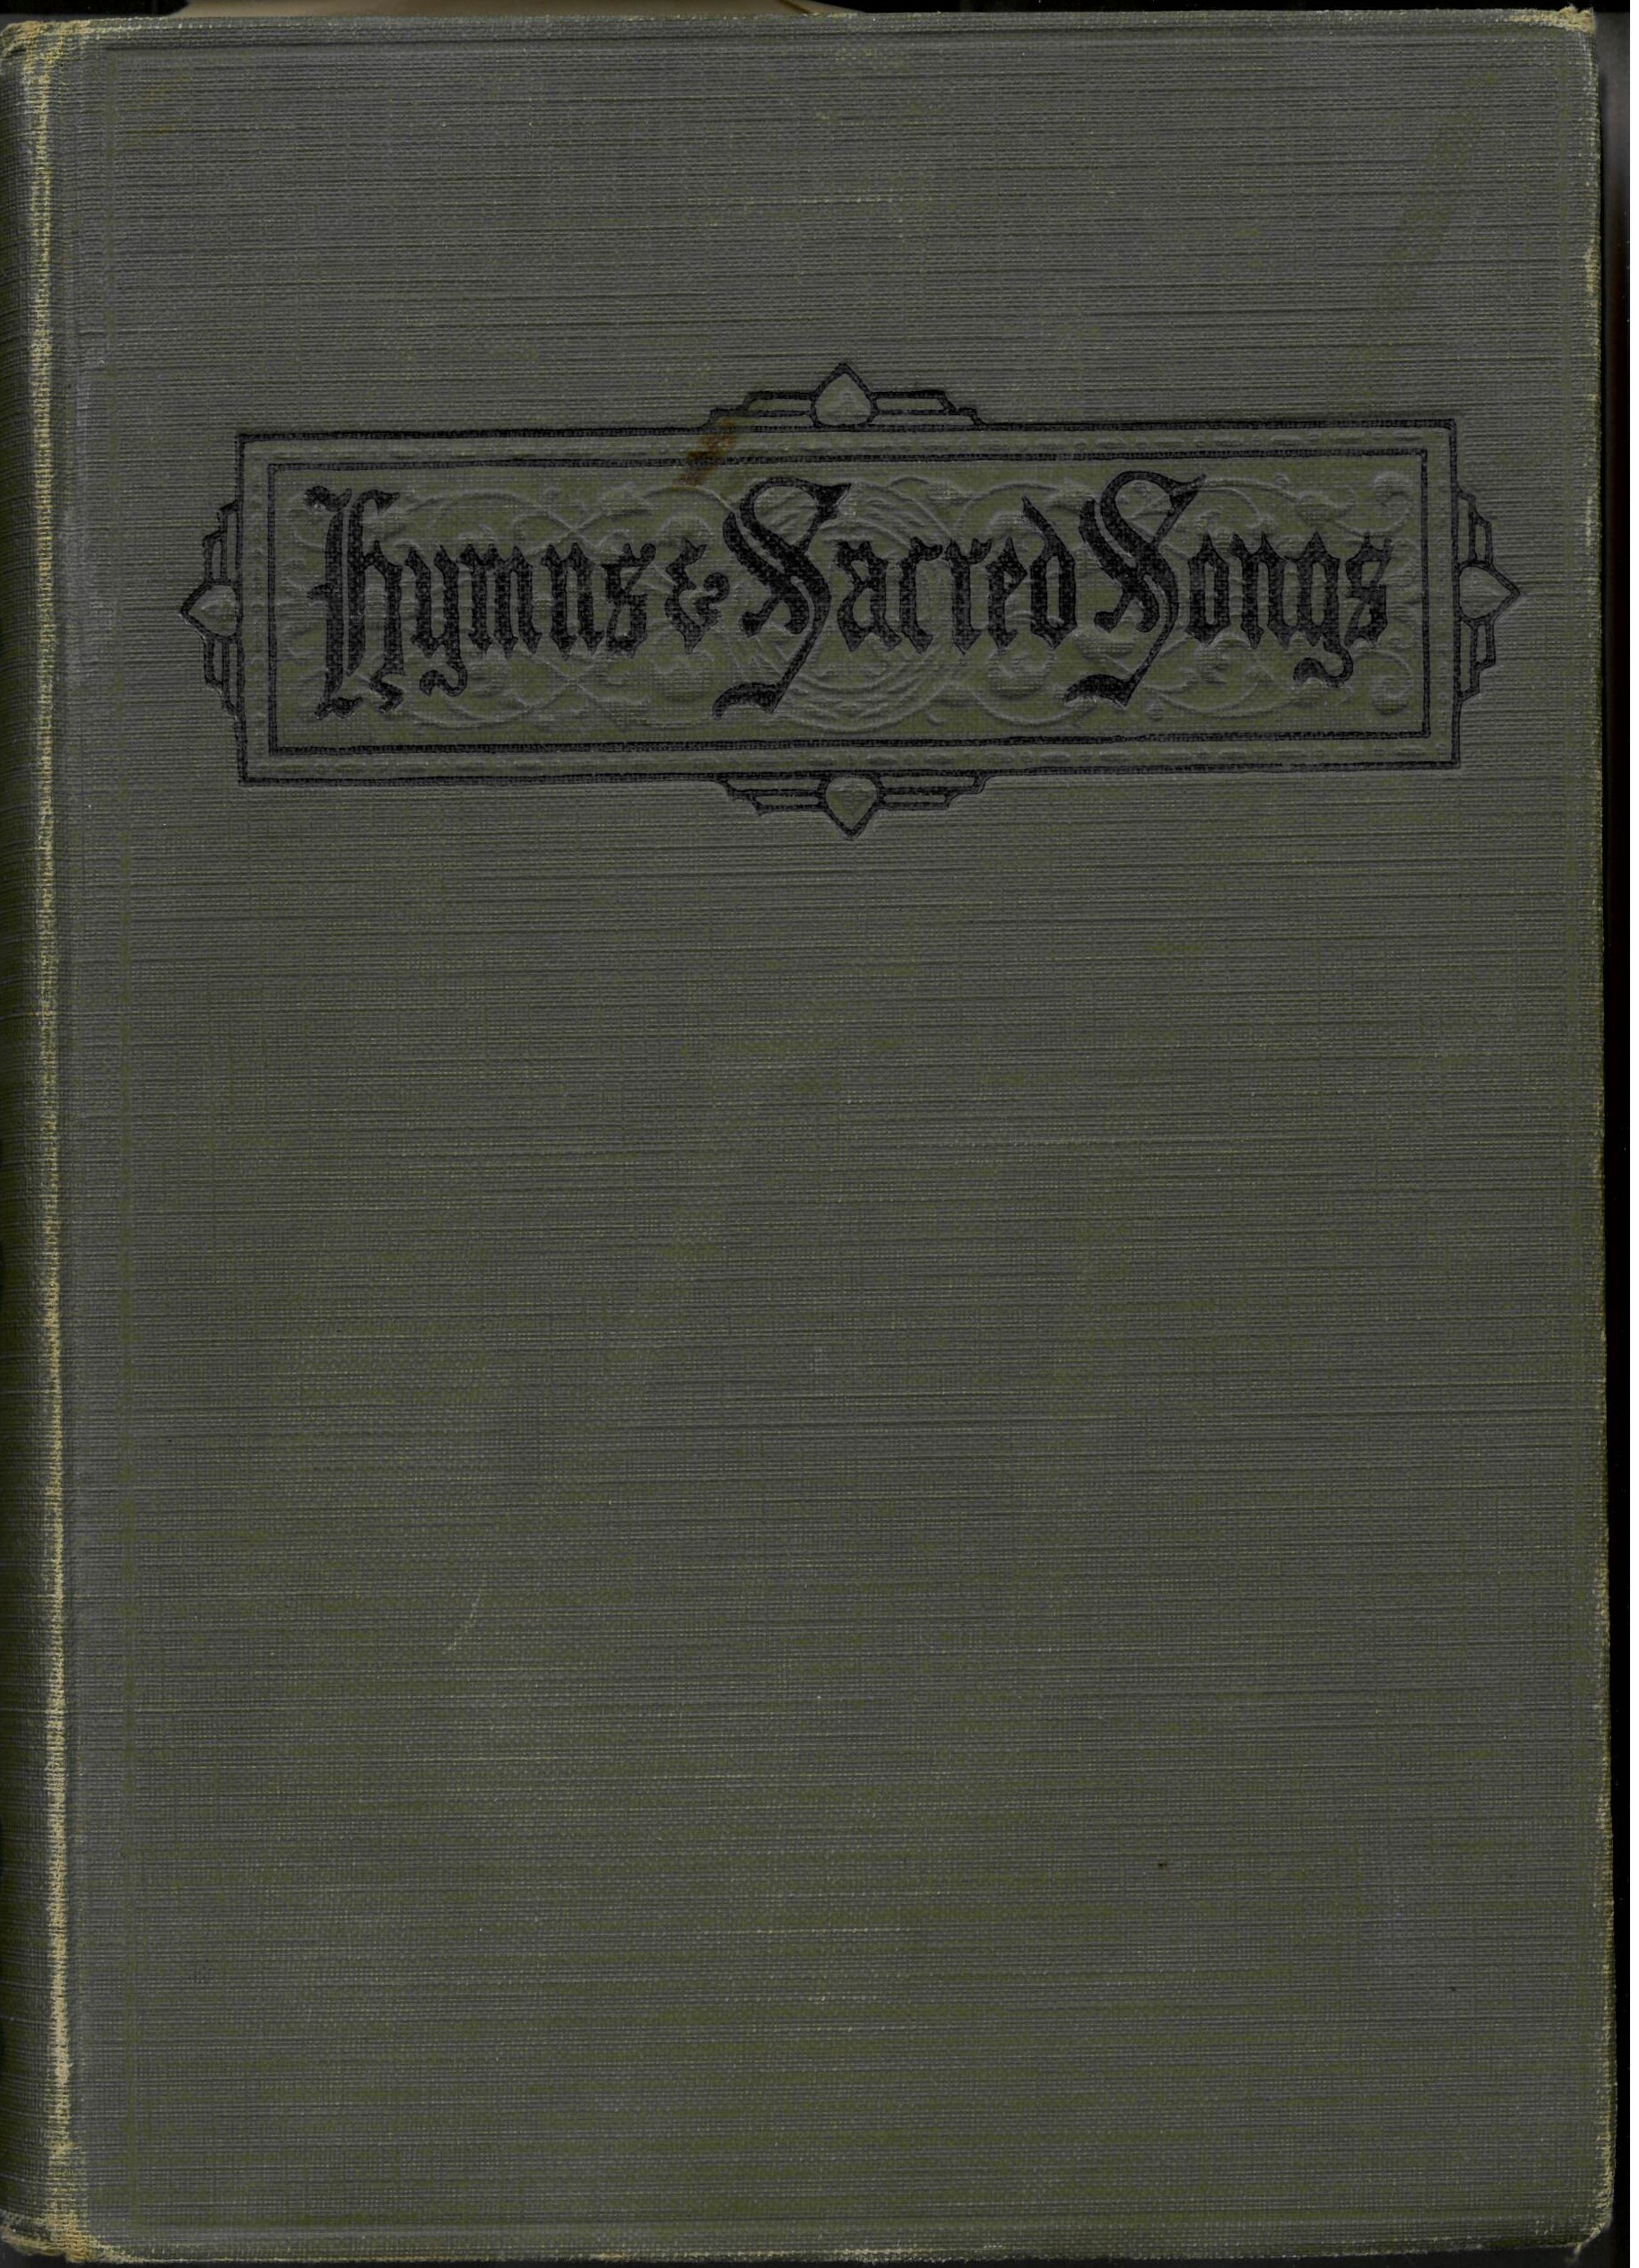 Hymns and Sacred Songs. E. O. Excell, Editor. Hope Publishing Company: Chicago,1918. Front cover.